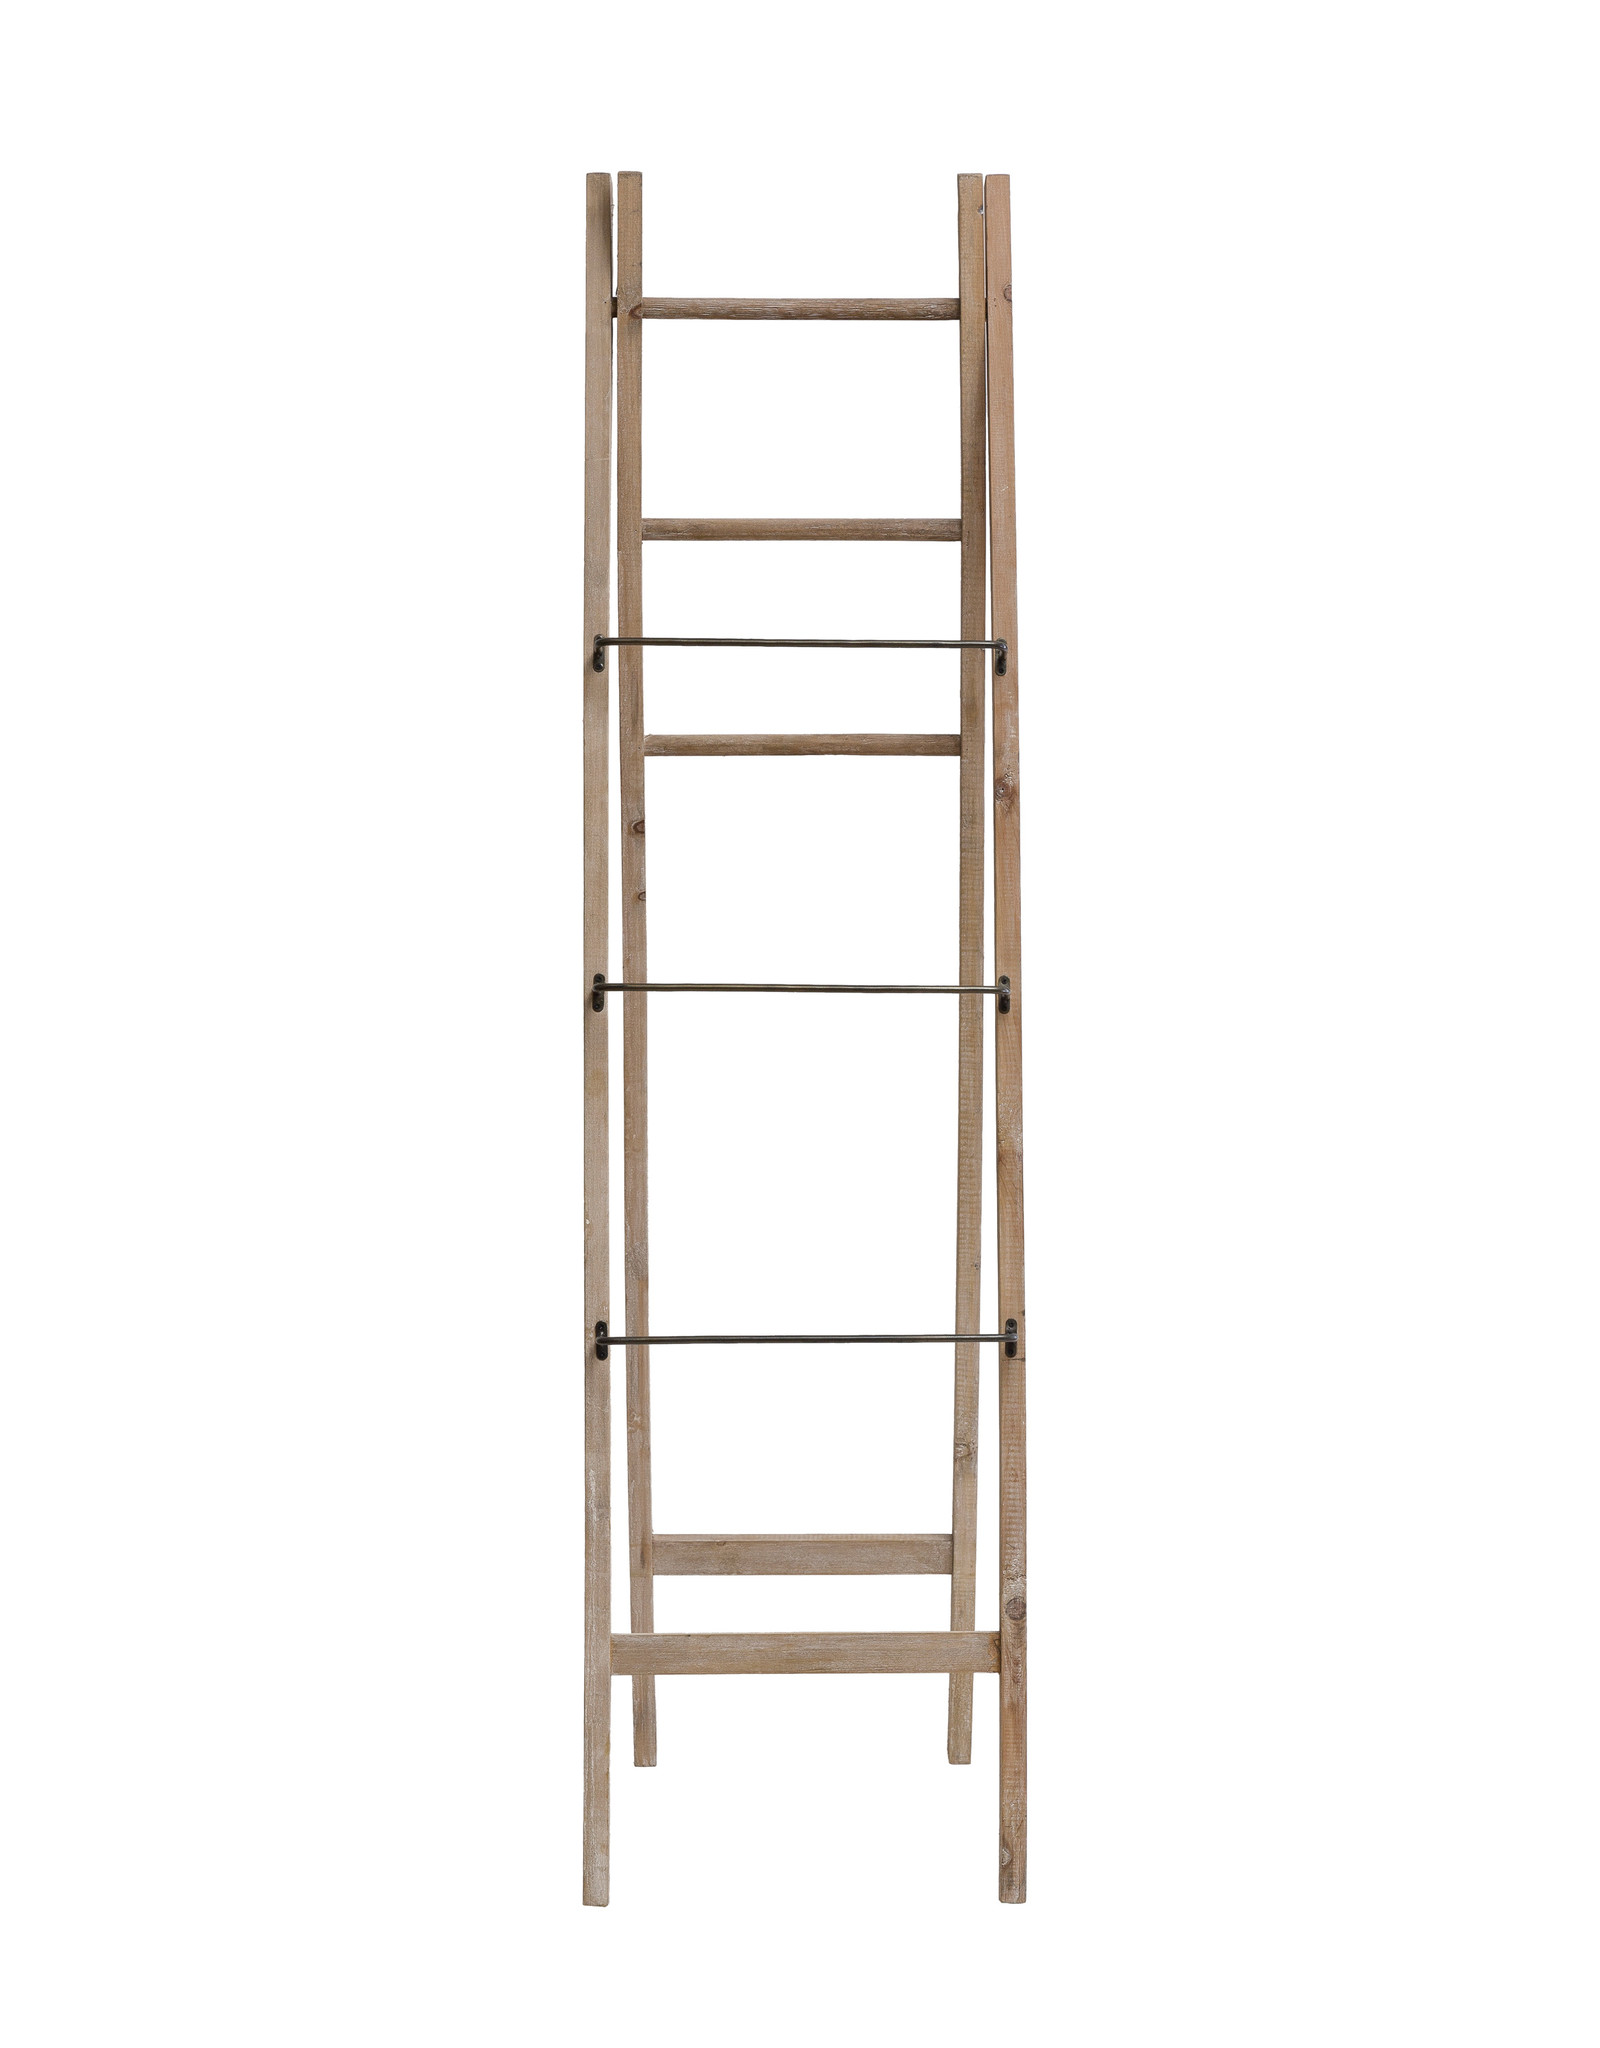 "2-Sided 71""H Decorative A-Frame Fir Wood Ladder with Metal & Wood Rungs"